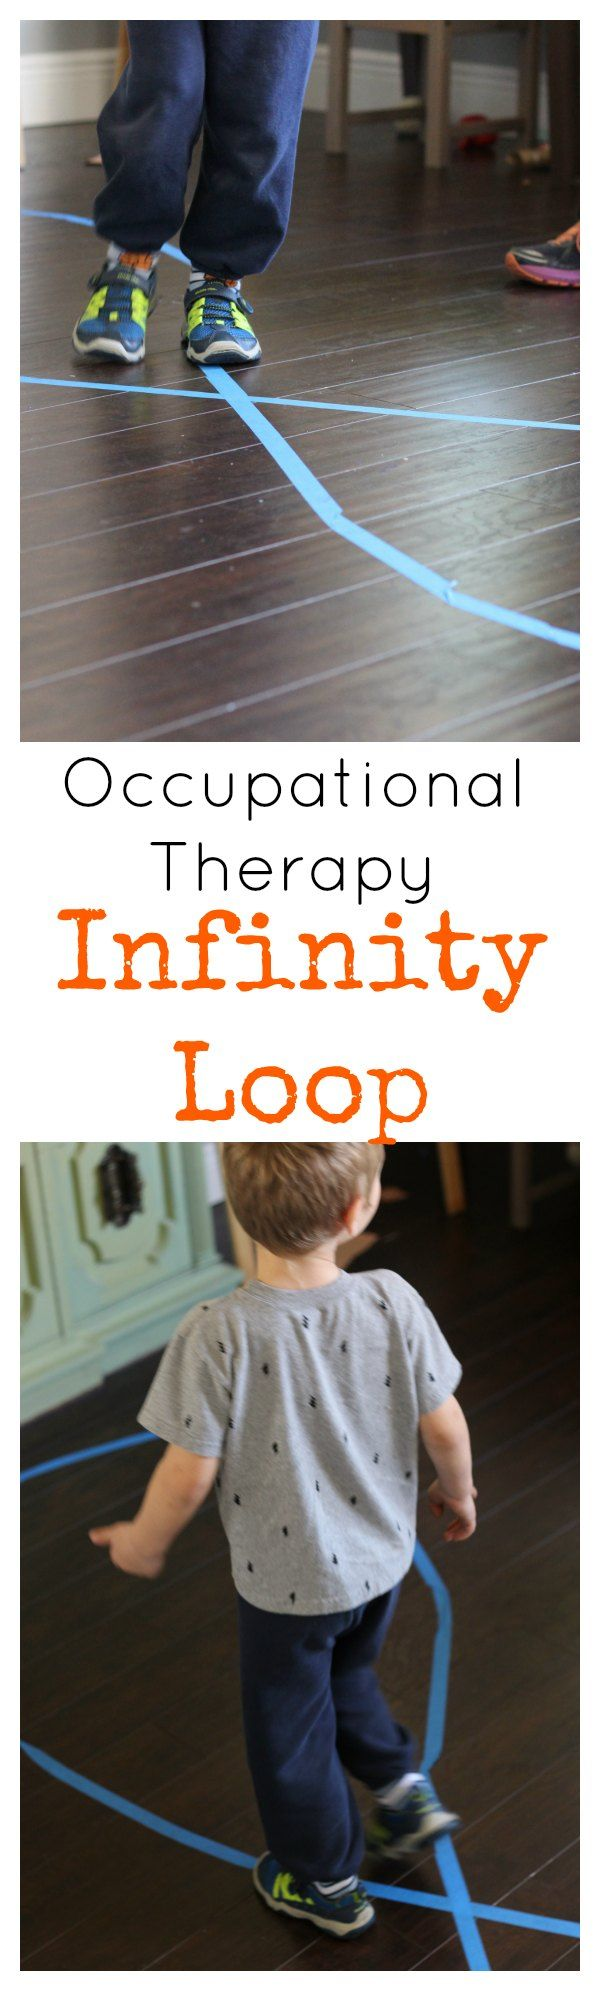 Occupational Therapy: Infinity Loop | Occupational therapy ...